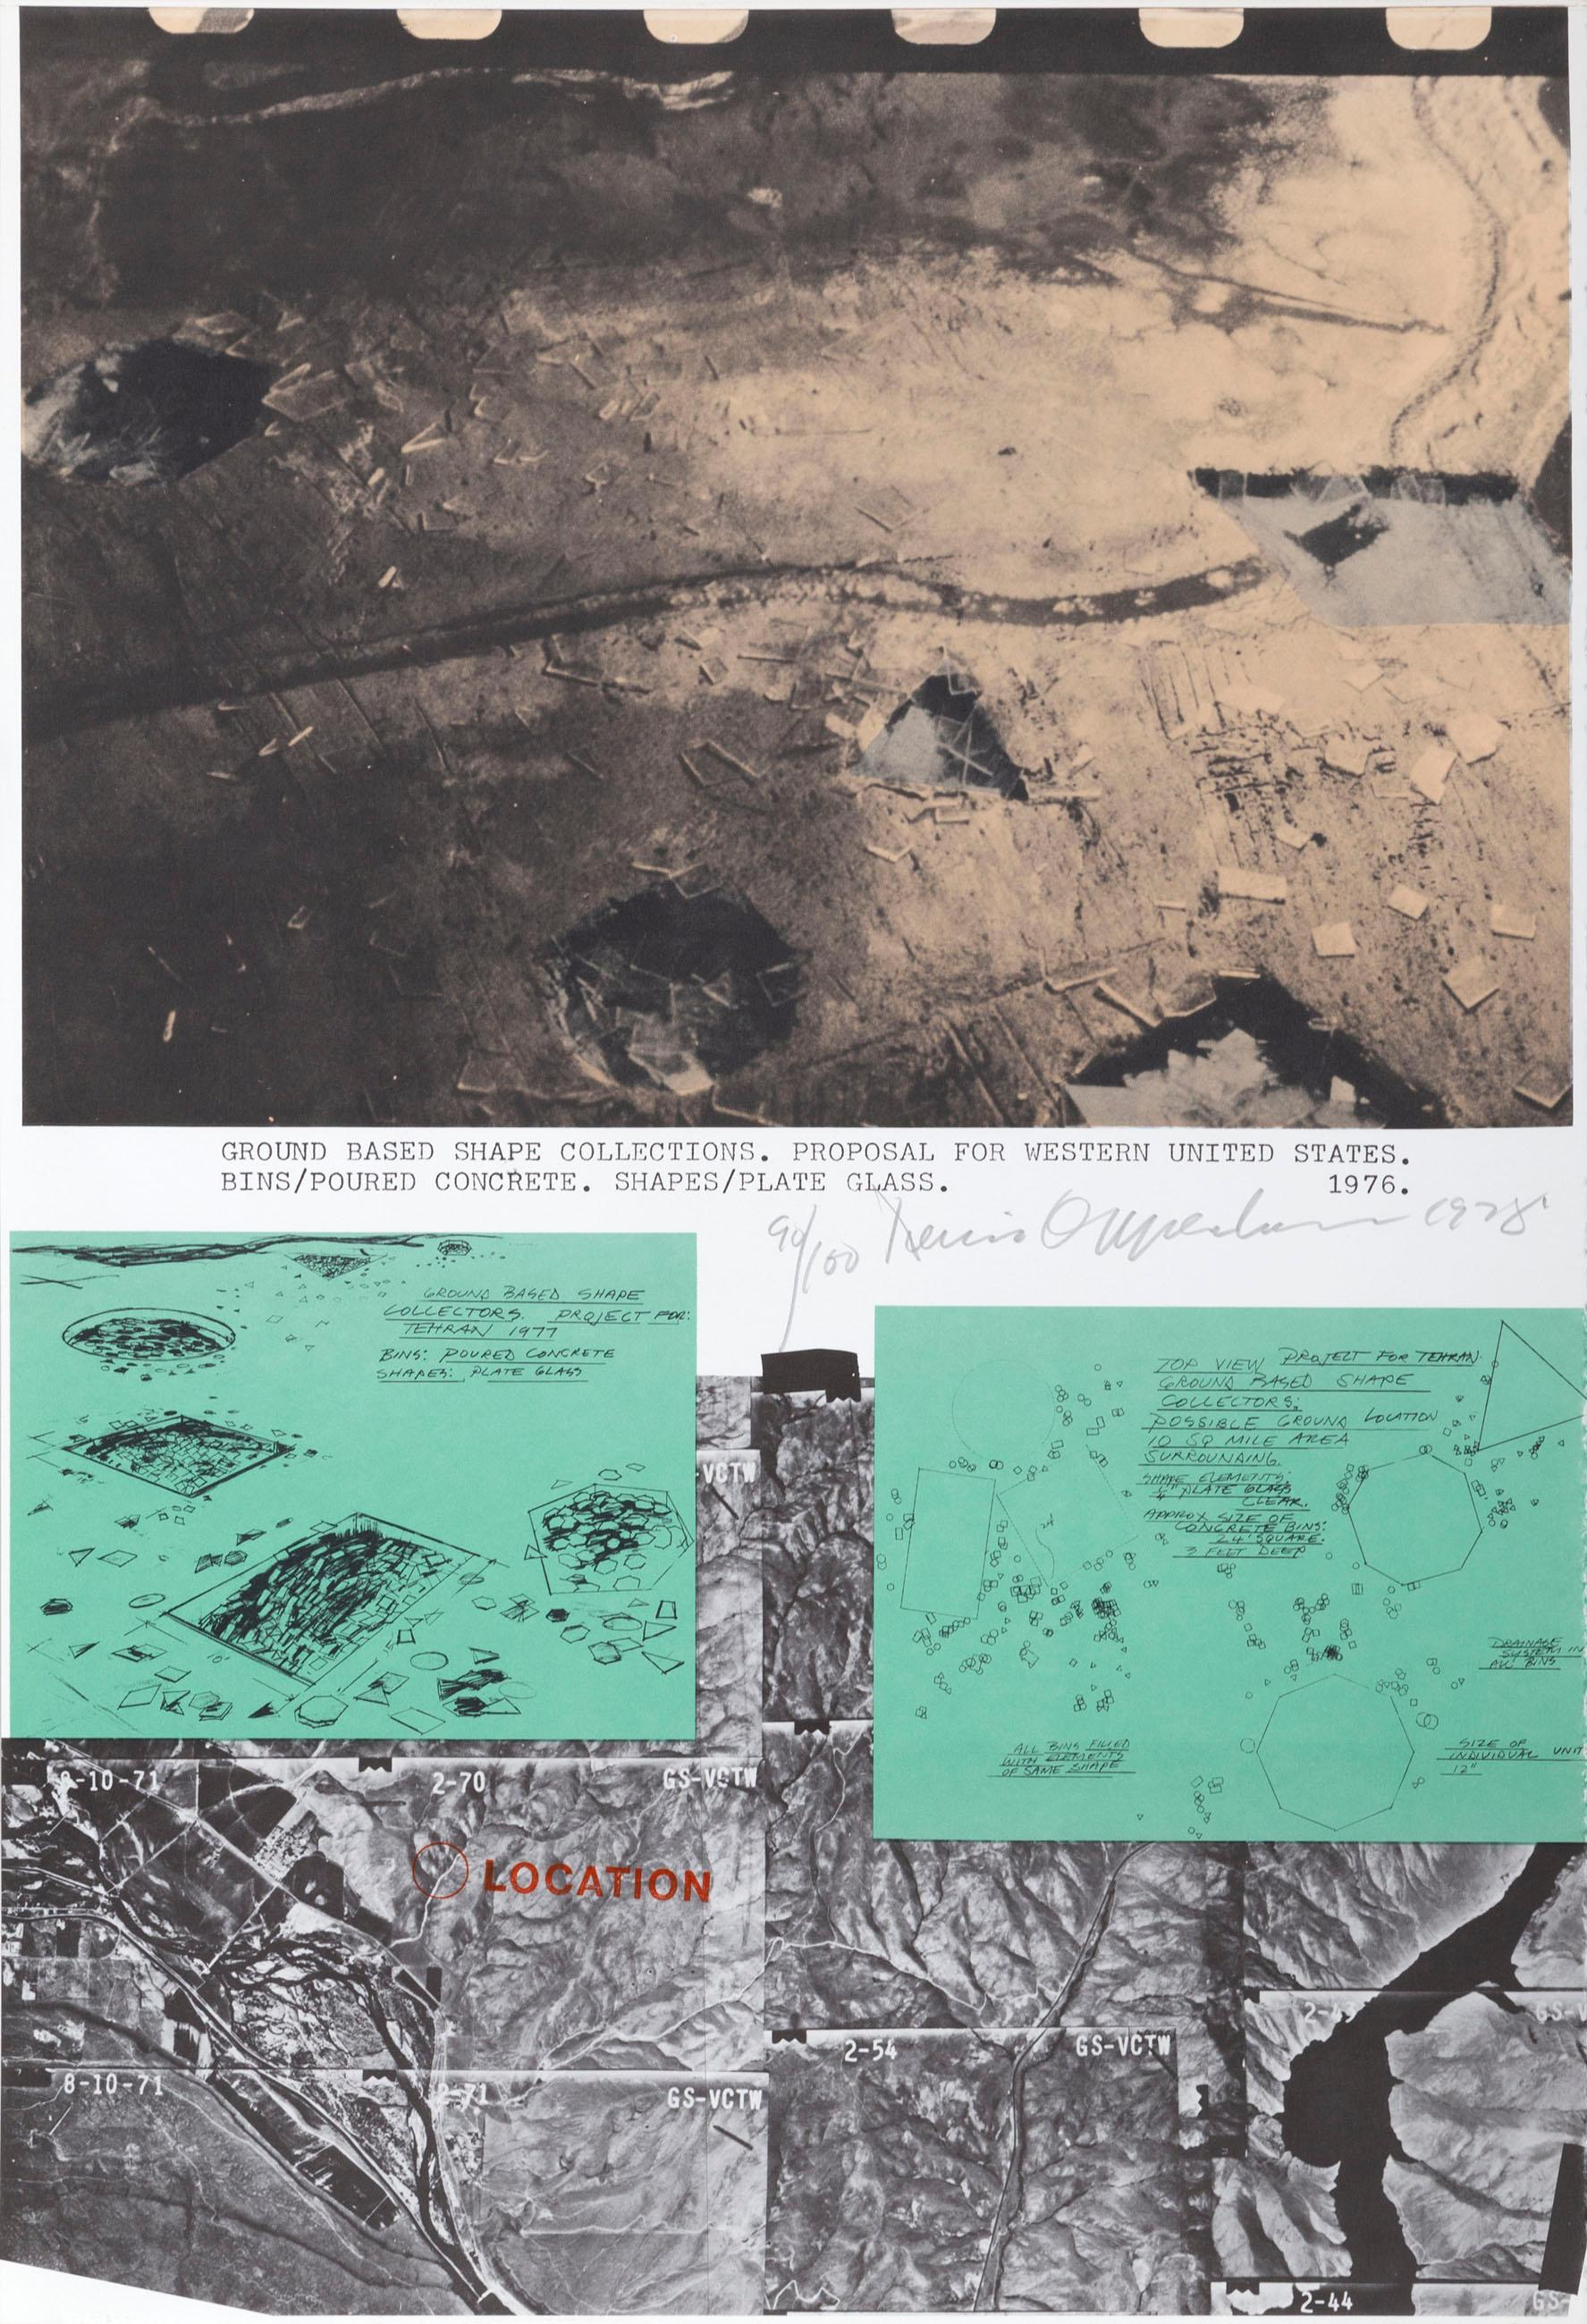 Dennis Oppenheim, Ground Based Shape Collections, Lithograph